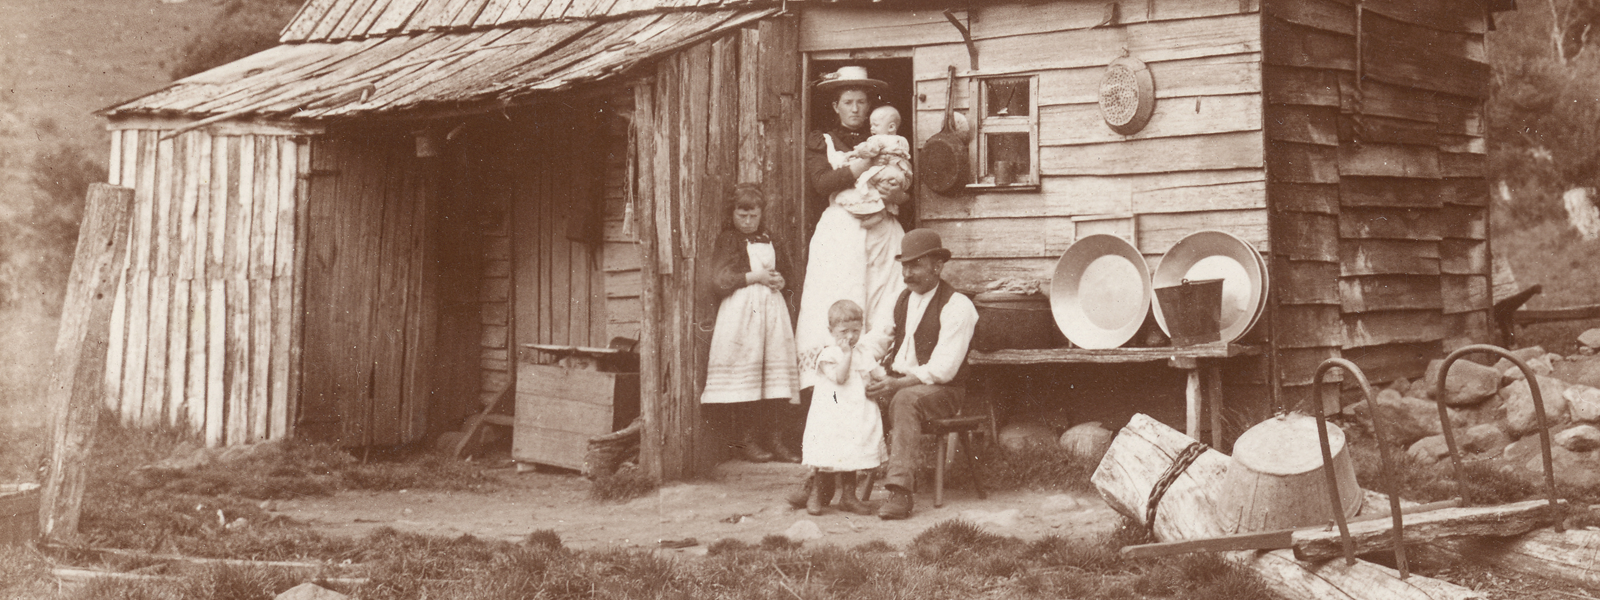 Sepia photo from the 1800s of a family outside a hut.